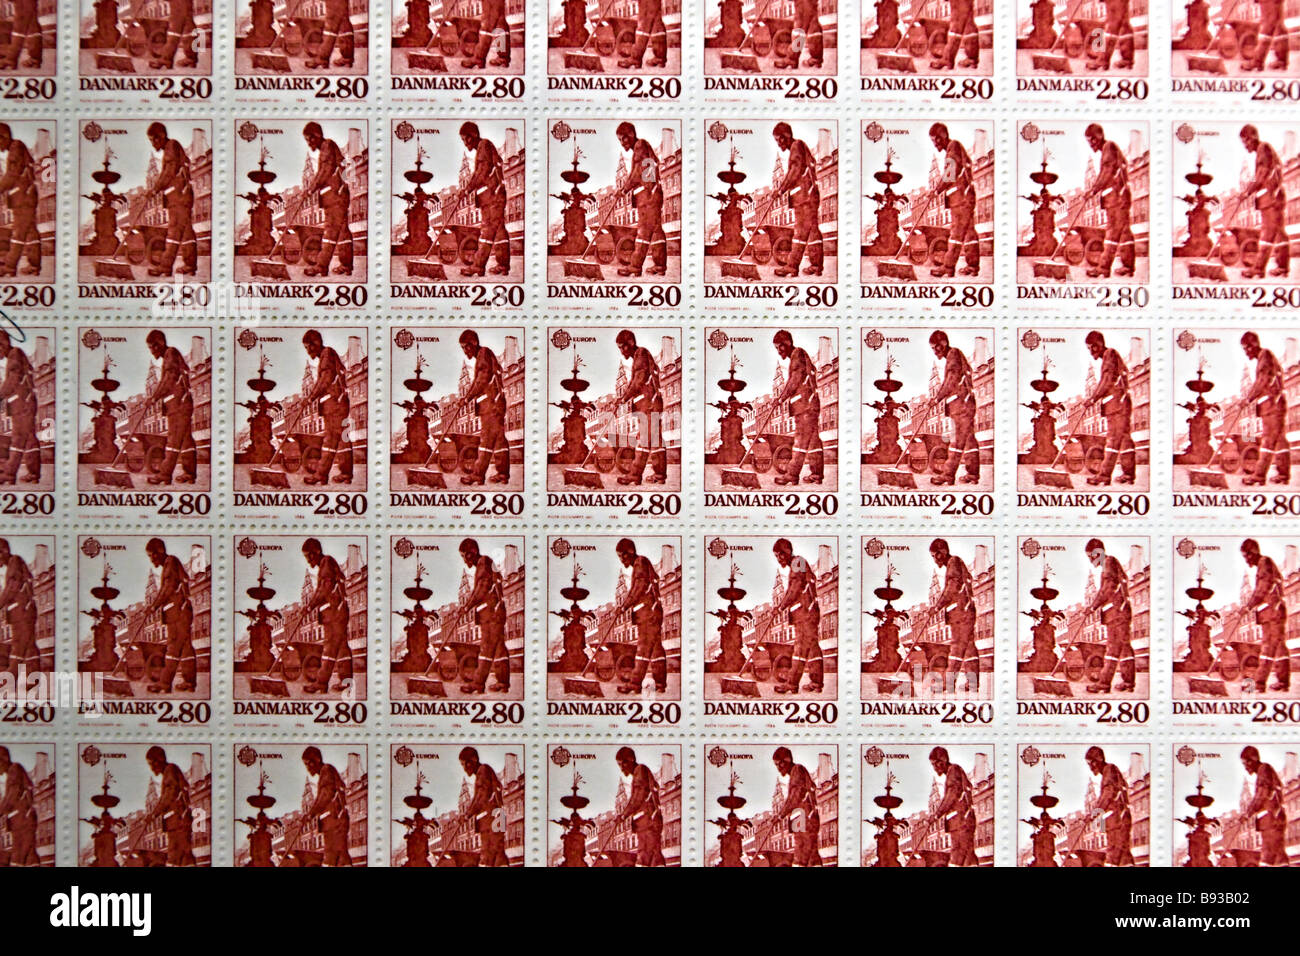 Old Danish stamp sheet with a road sweeper subject - Stock Image